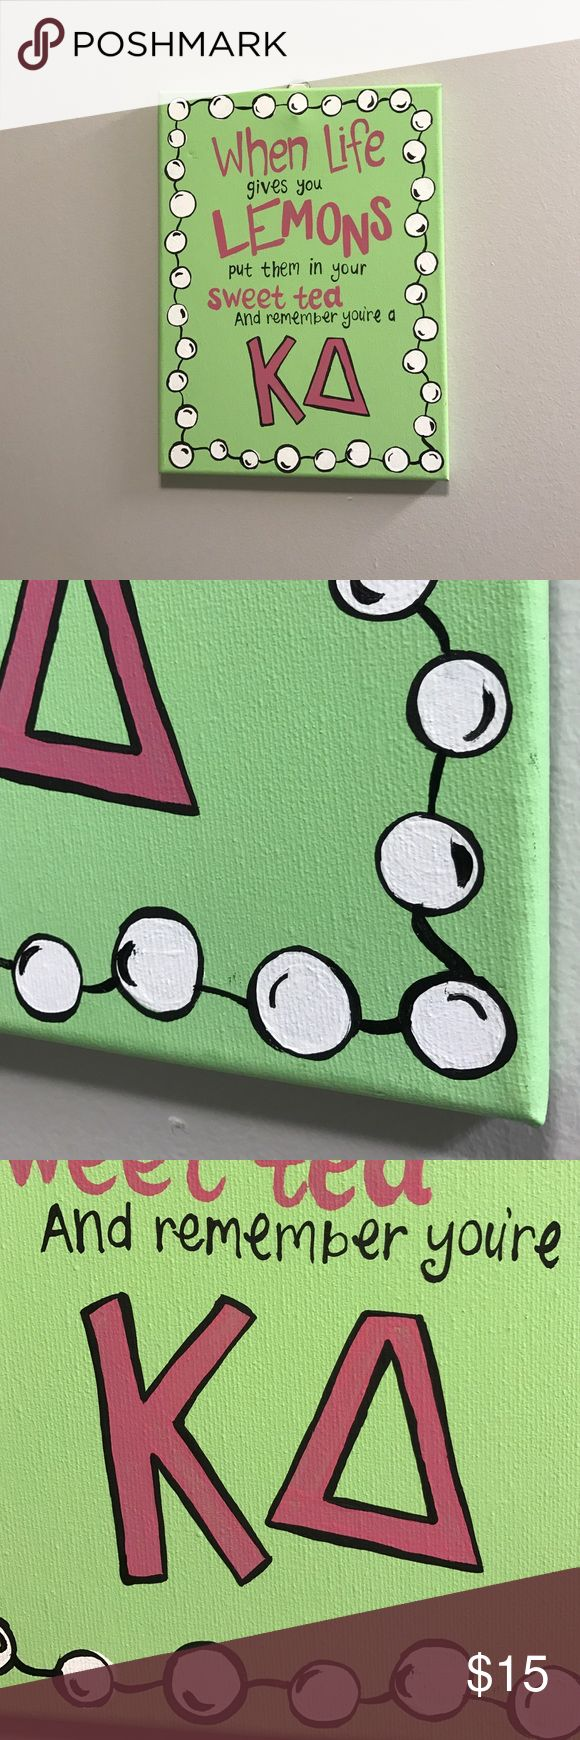 Hand Painted Kappa Delta canvas Cute pink and green kappa delta canvas! Perfect for a big/little week or decorating your room! Lots of detail went into this and it's in perfect condition, just moving and trying to get rid of some things. Other